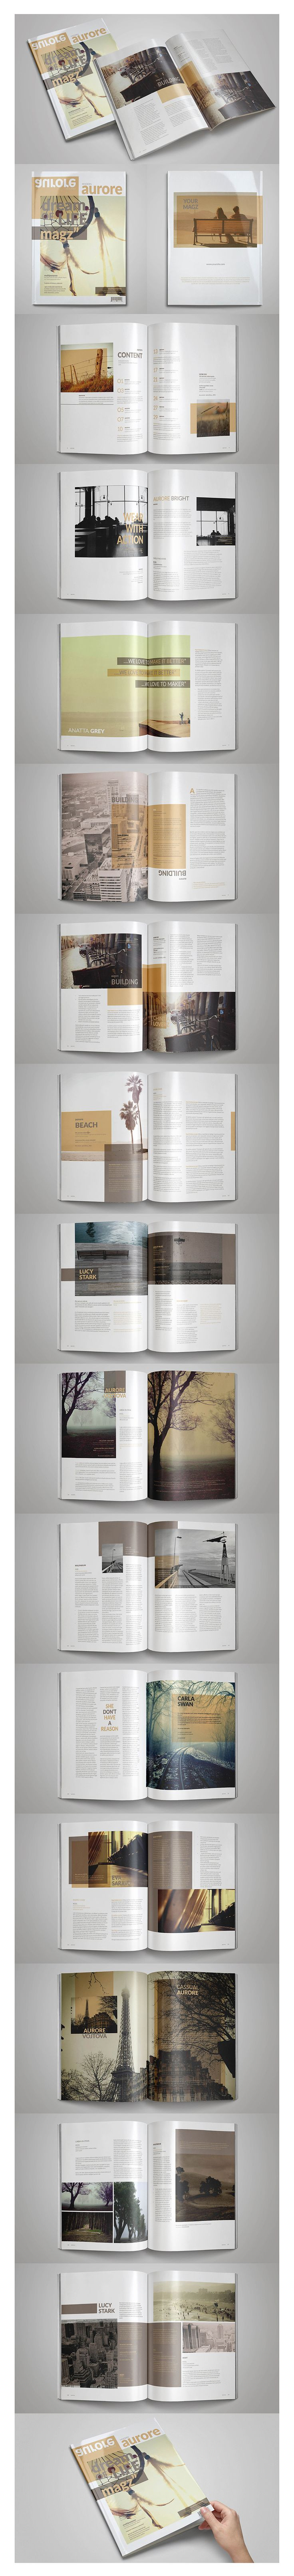 Multipurpose Indesign Magazine Template Today I will you introduce you Multipurpose Indesign Magazine Template.Professional samples can be used for all industries. It includes 30 editable and customizable pages.